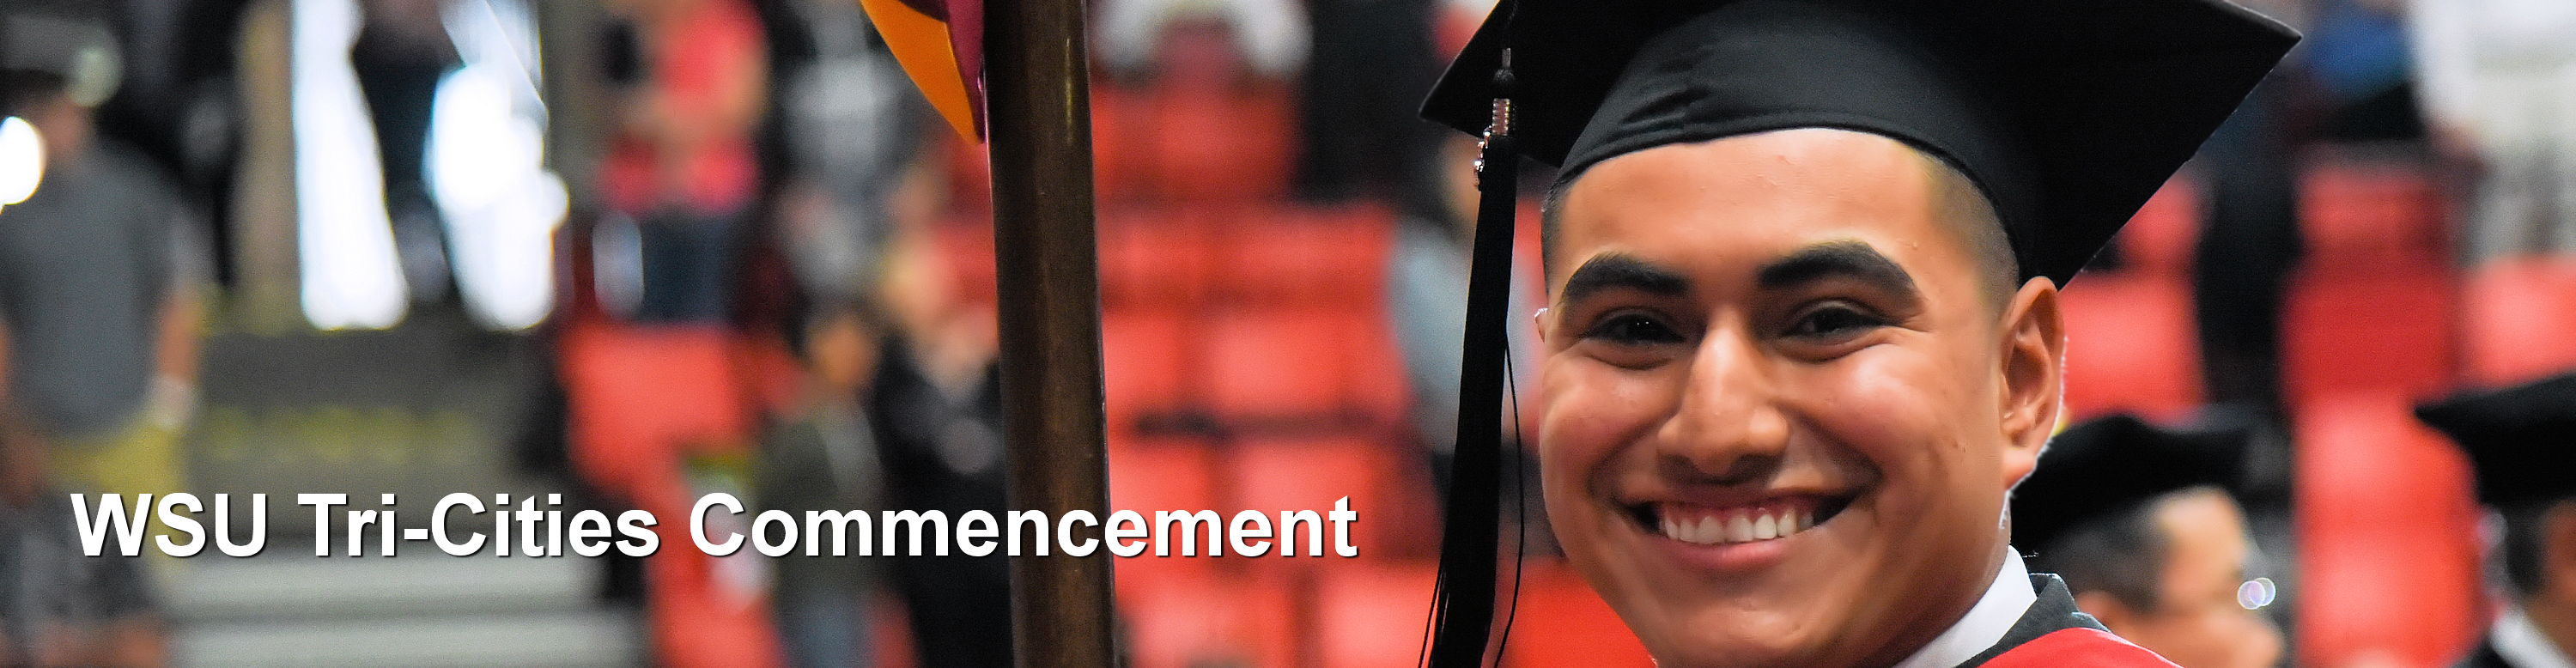 Male student wearing black cap and gown smiling big after recently graduating from WSU Tri-Cities